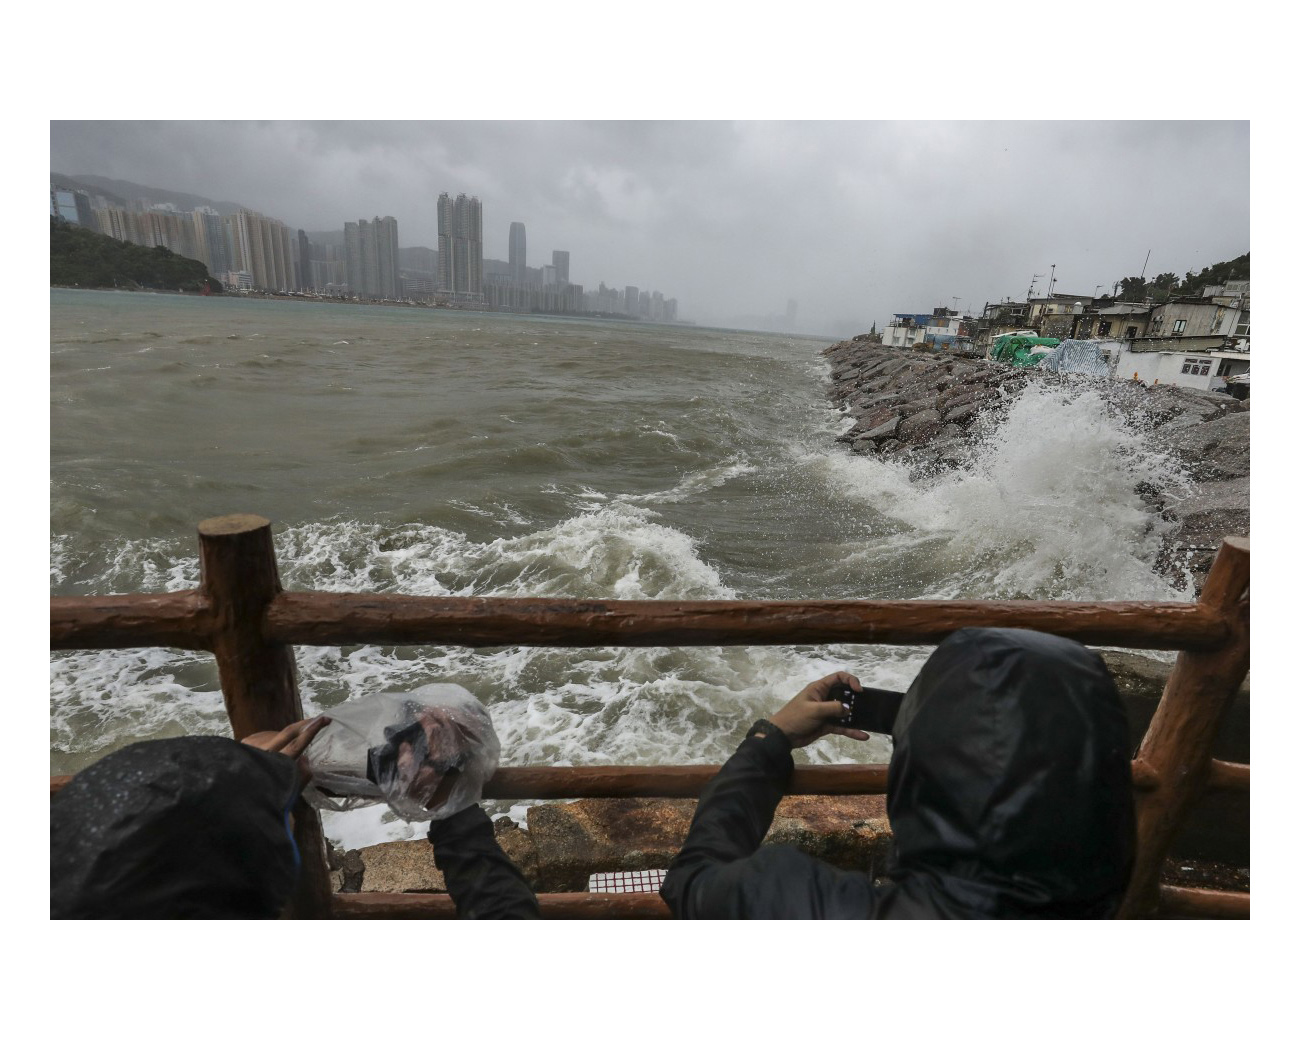 New storm defences for Hong Kong after experience of Typhoon Mangkhut – and as climate change threatens even worse